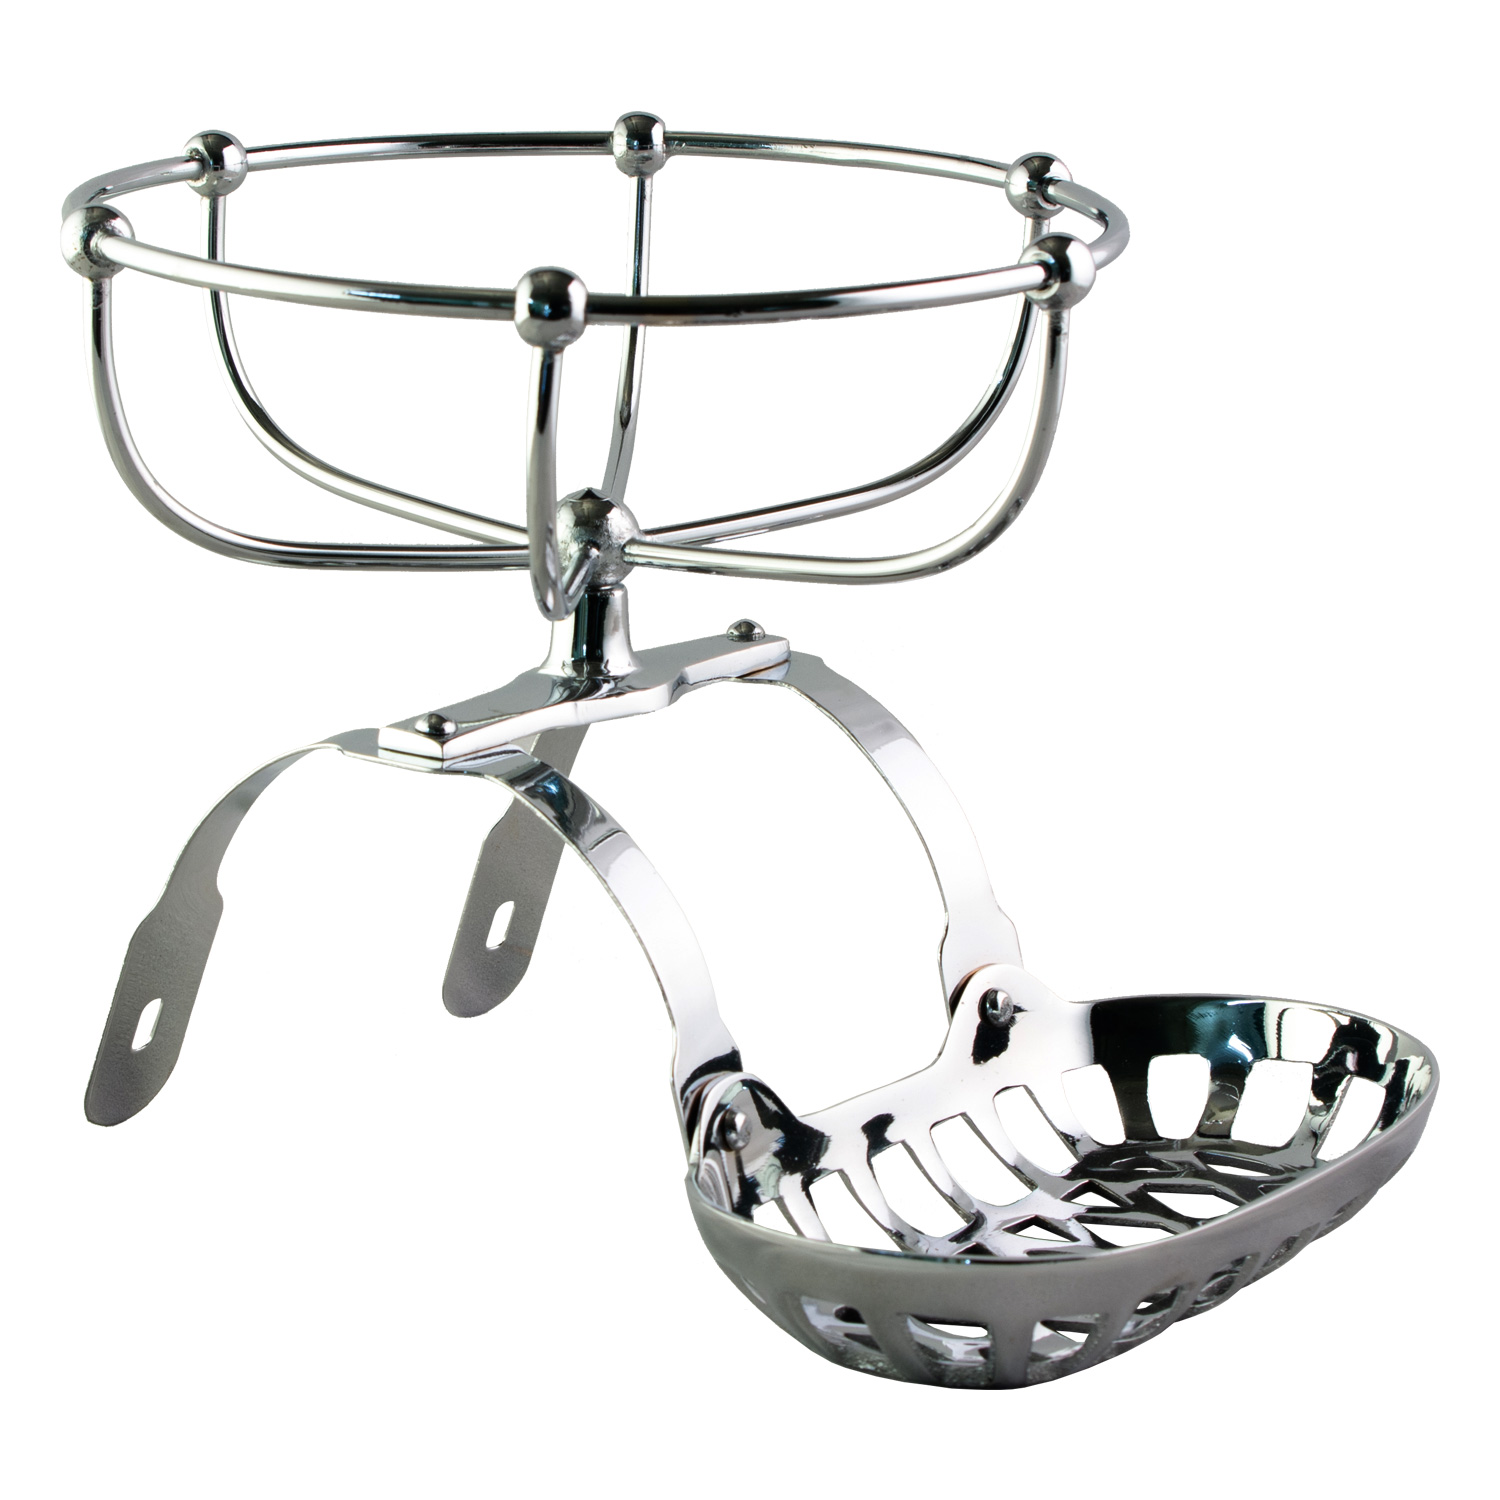 Chrome Soap Sponge Holder Dish For Claw Foot Bath Tub Antique Style The Kings Bay